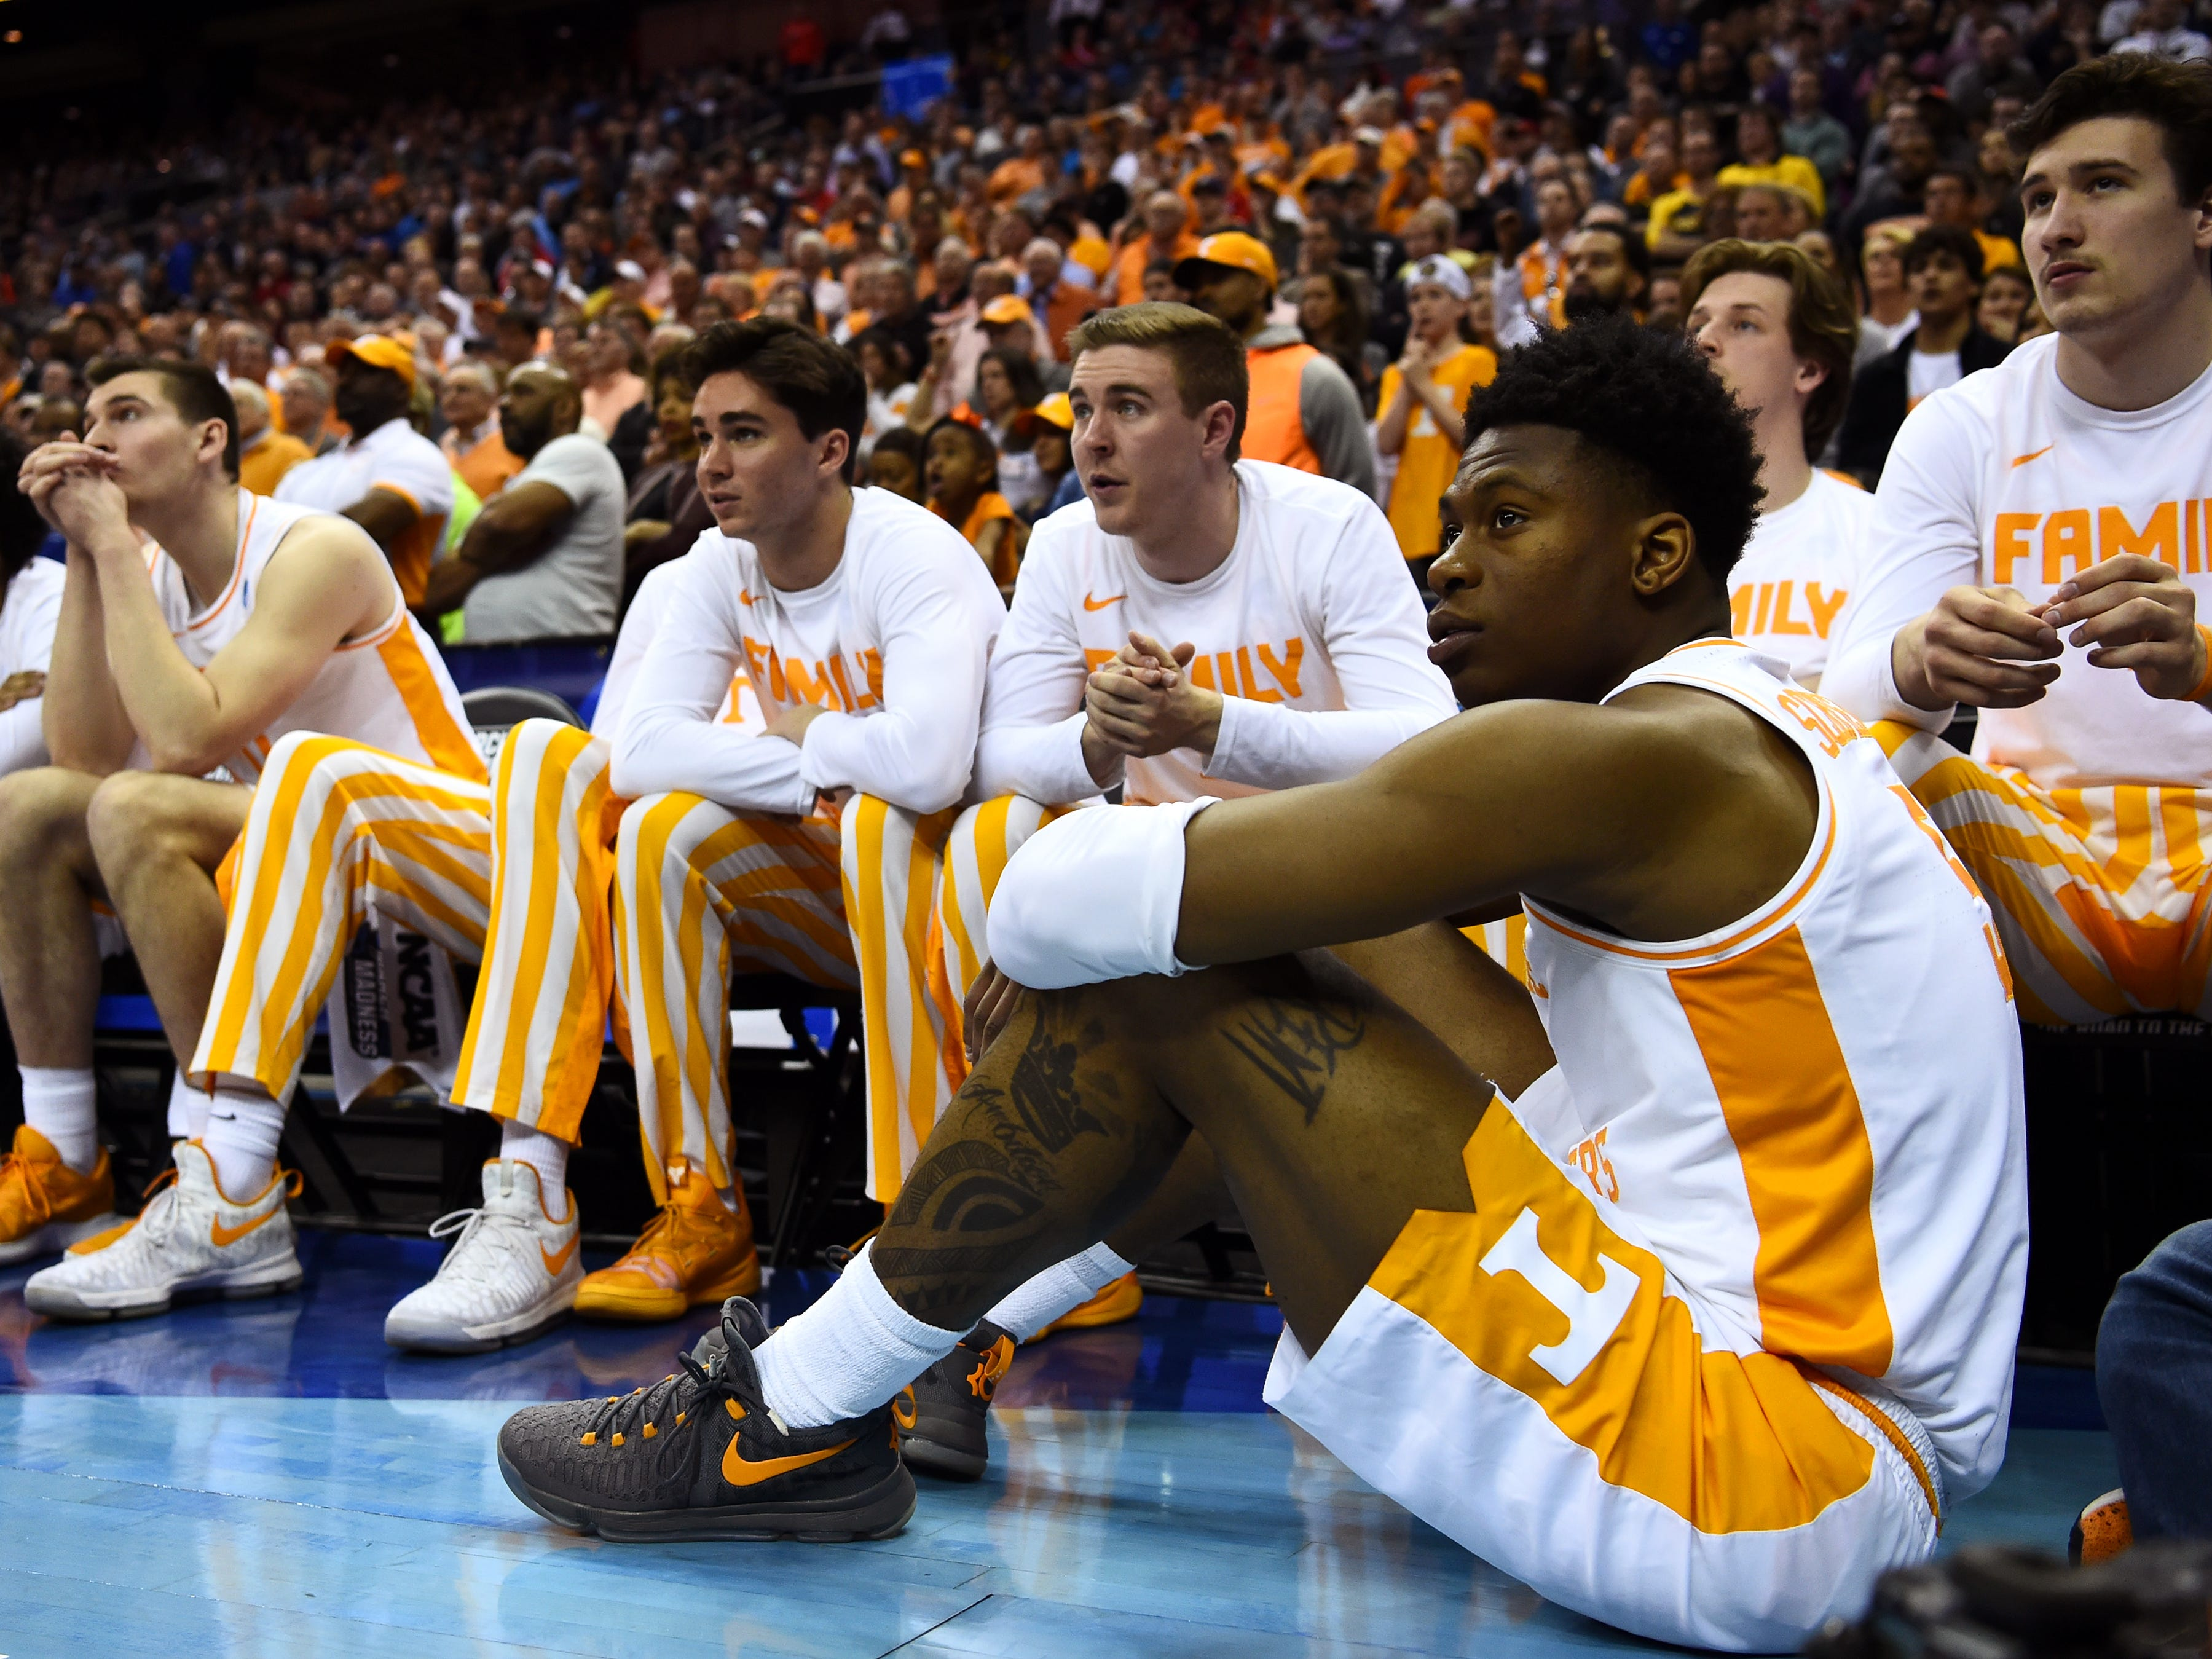 Tennessee guard Admiral Schofield (5) sits on the front in front of the Tennessee bench during overtime of the Tennessee VolunteersÕ basketball game against the Iowa Hawkeyes in the second round of the NCAA Tournament held at Nationwide Arena in Columbus, Ohio, on Sunday, March 24, 2019.